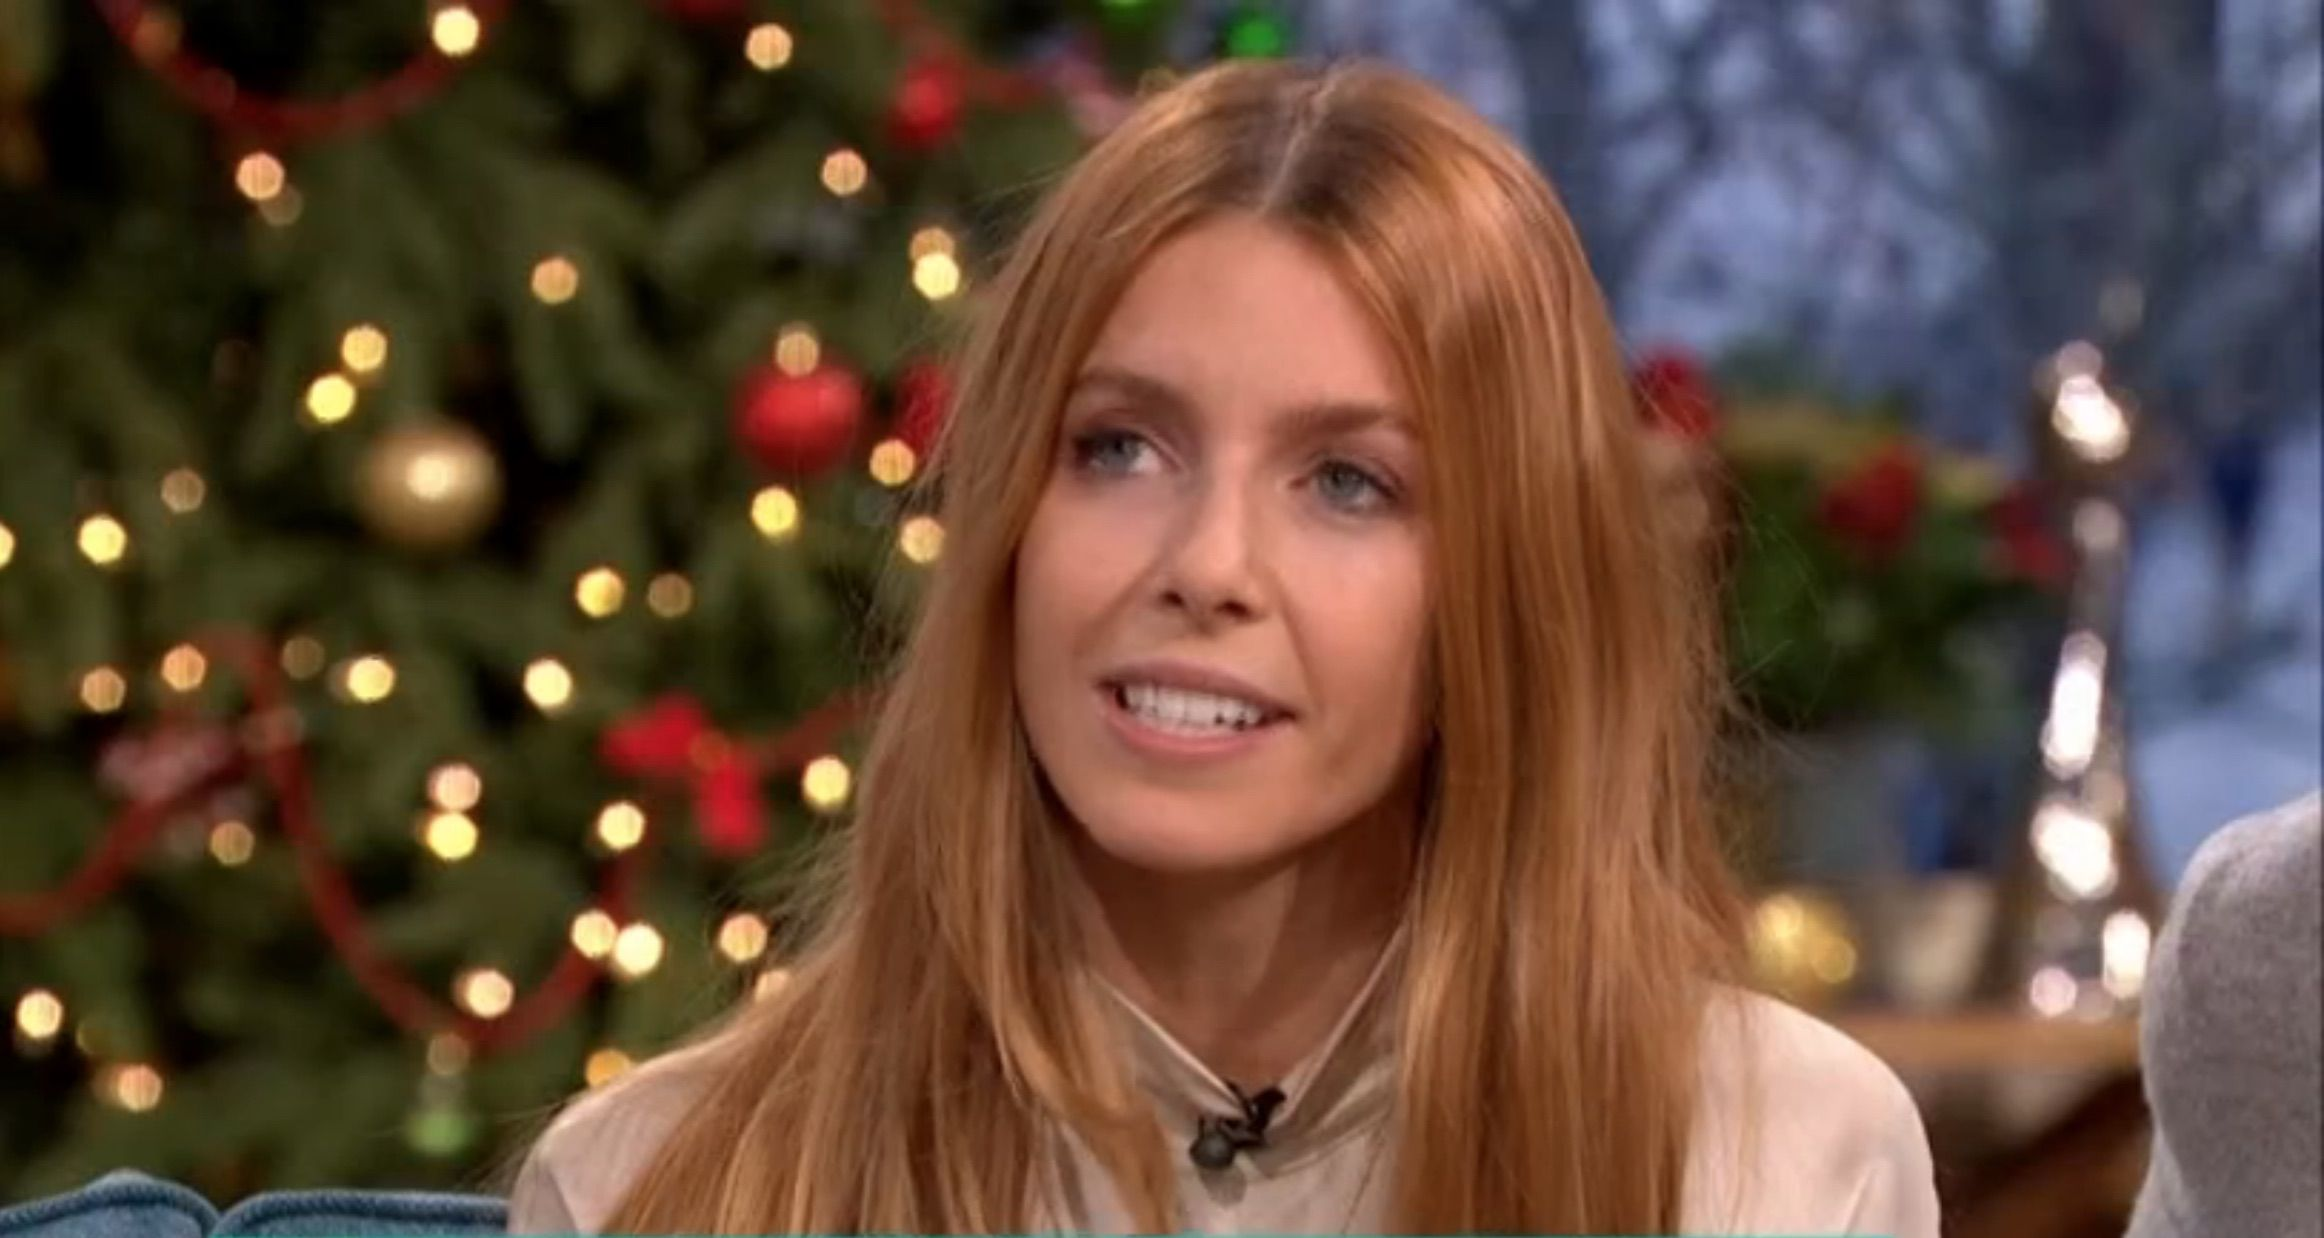 Strictly Come Dancing Winner Stacey Dooley Responds To Claims Shes Dating Kevin Clifton